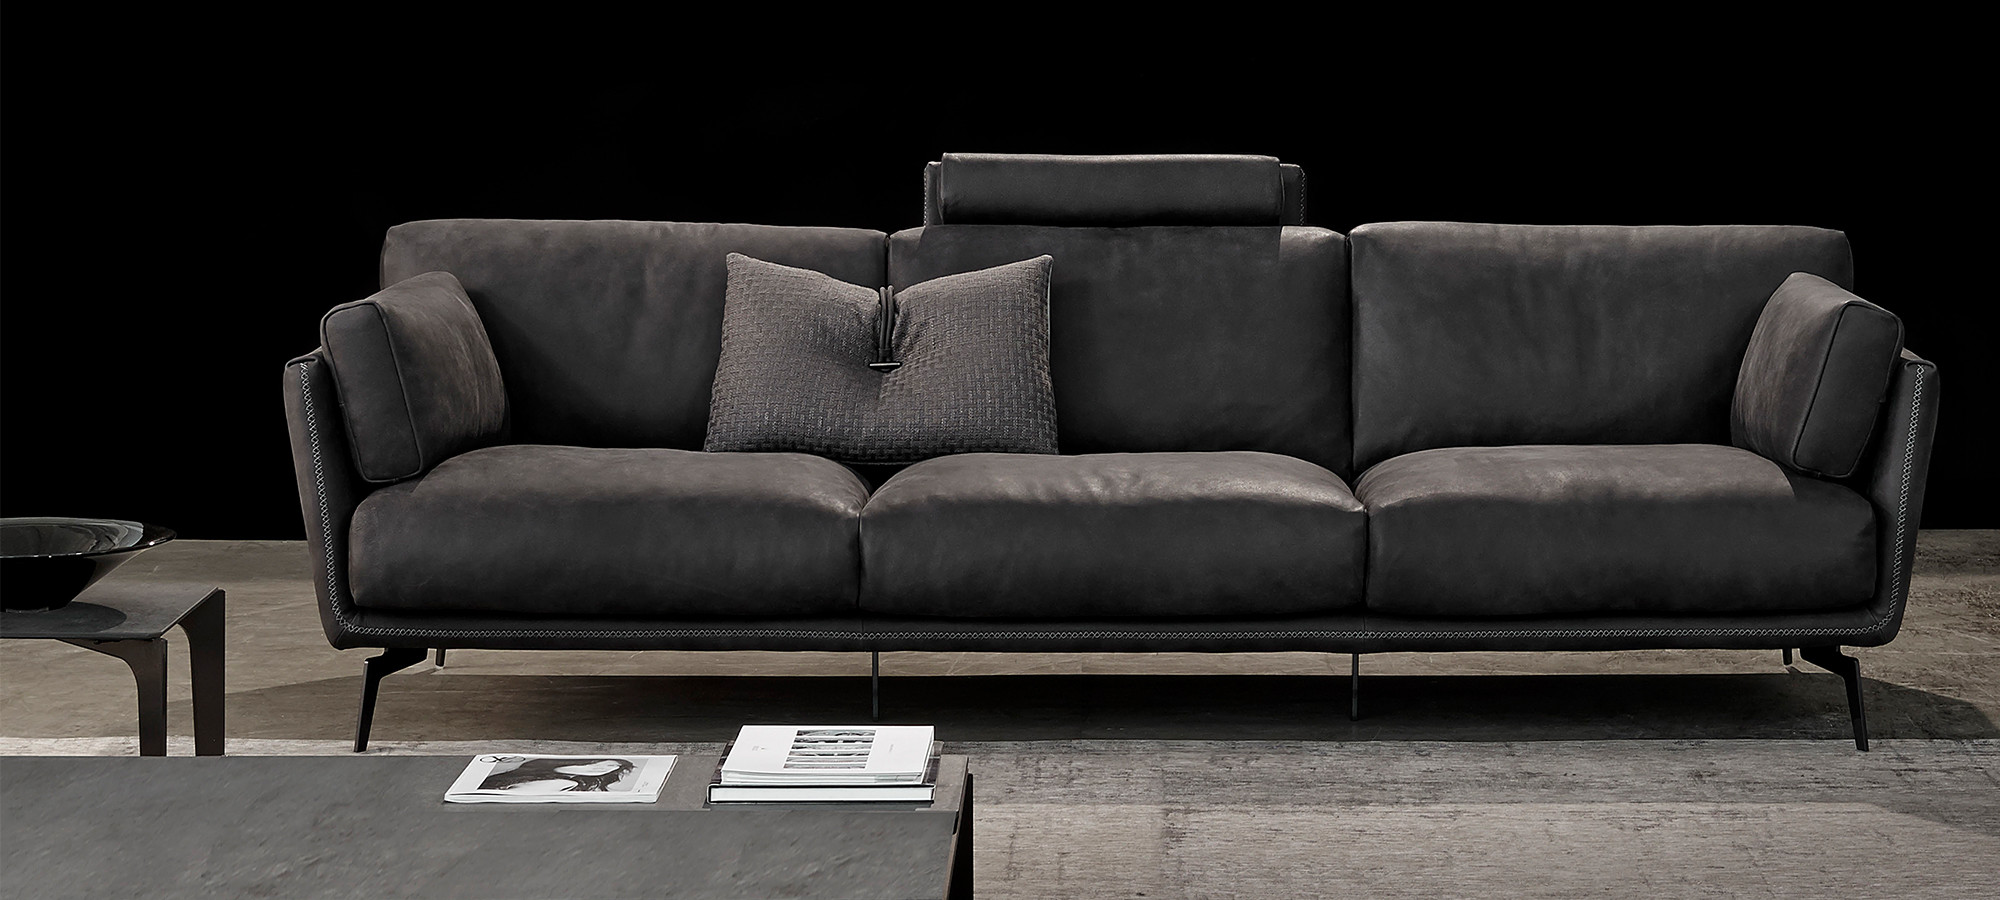 Gamma sofa modular sofa contemporary leather 3 seater soho for Gamma leather sectional sofa